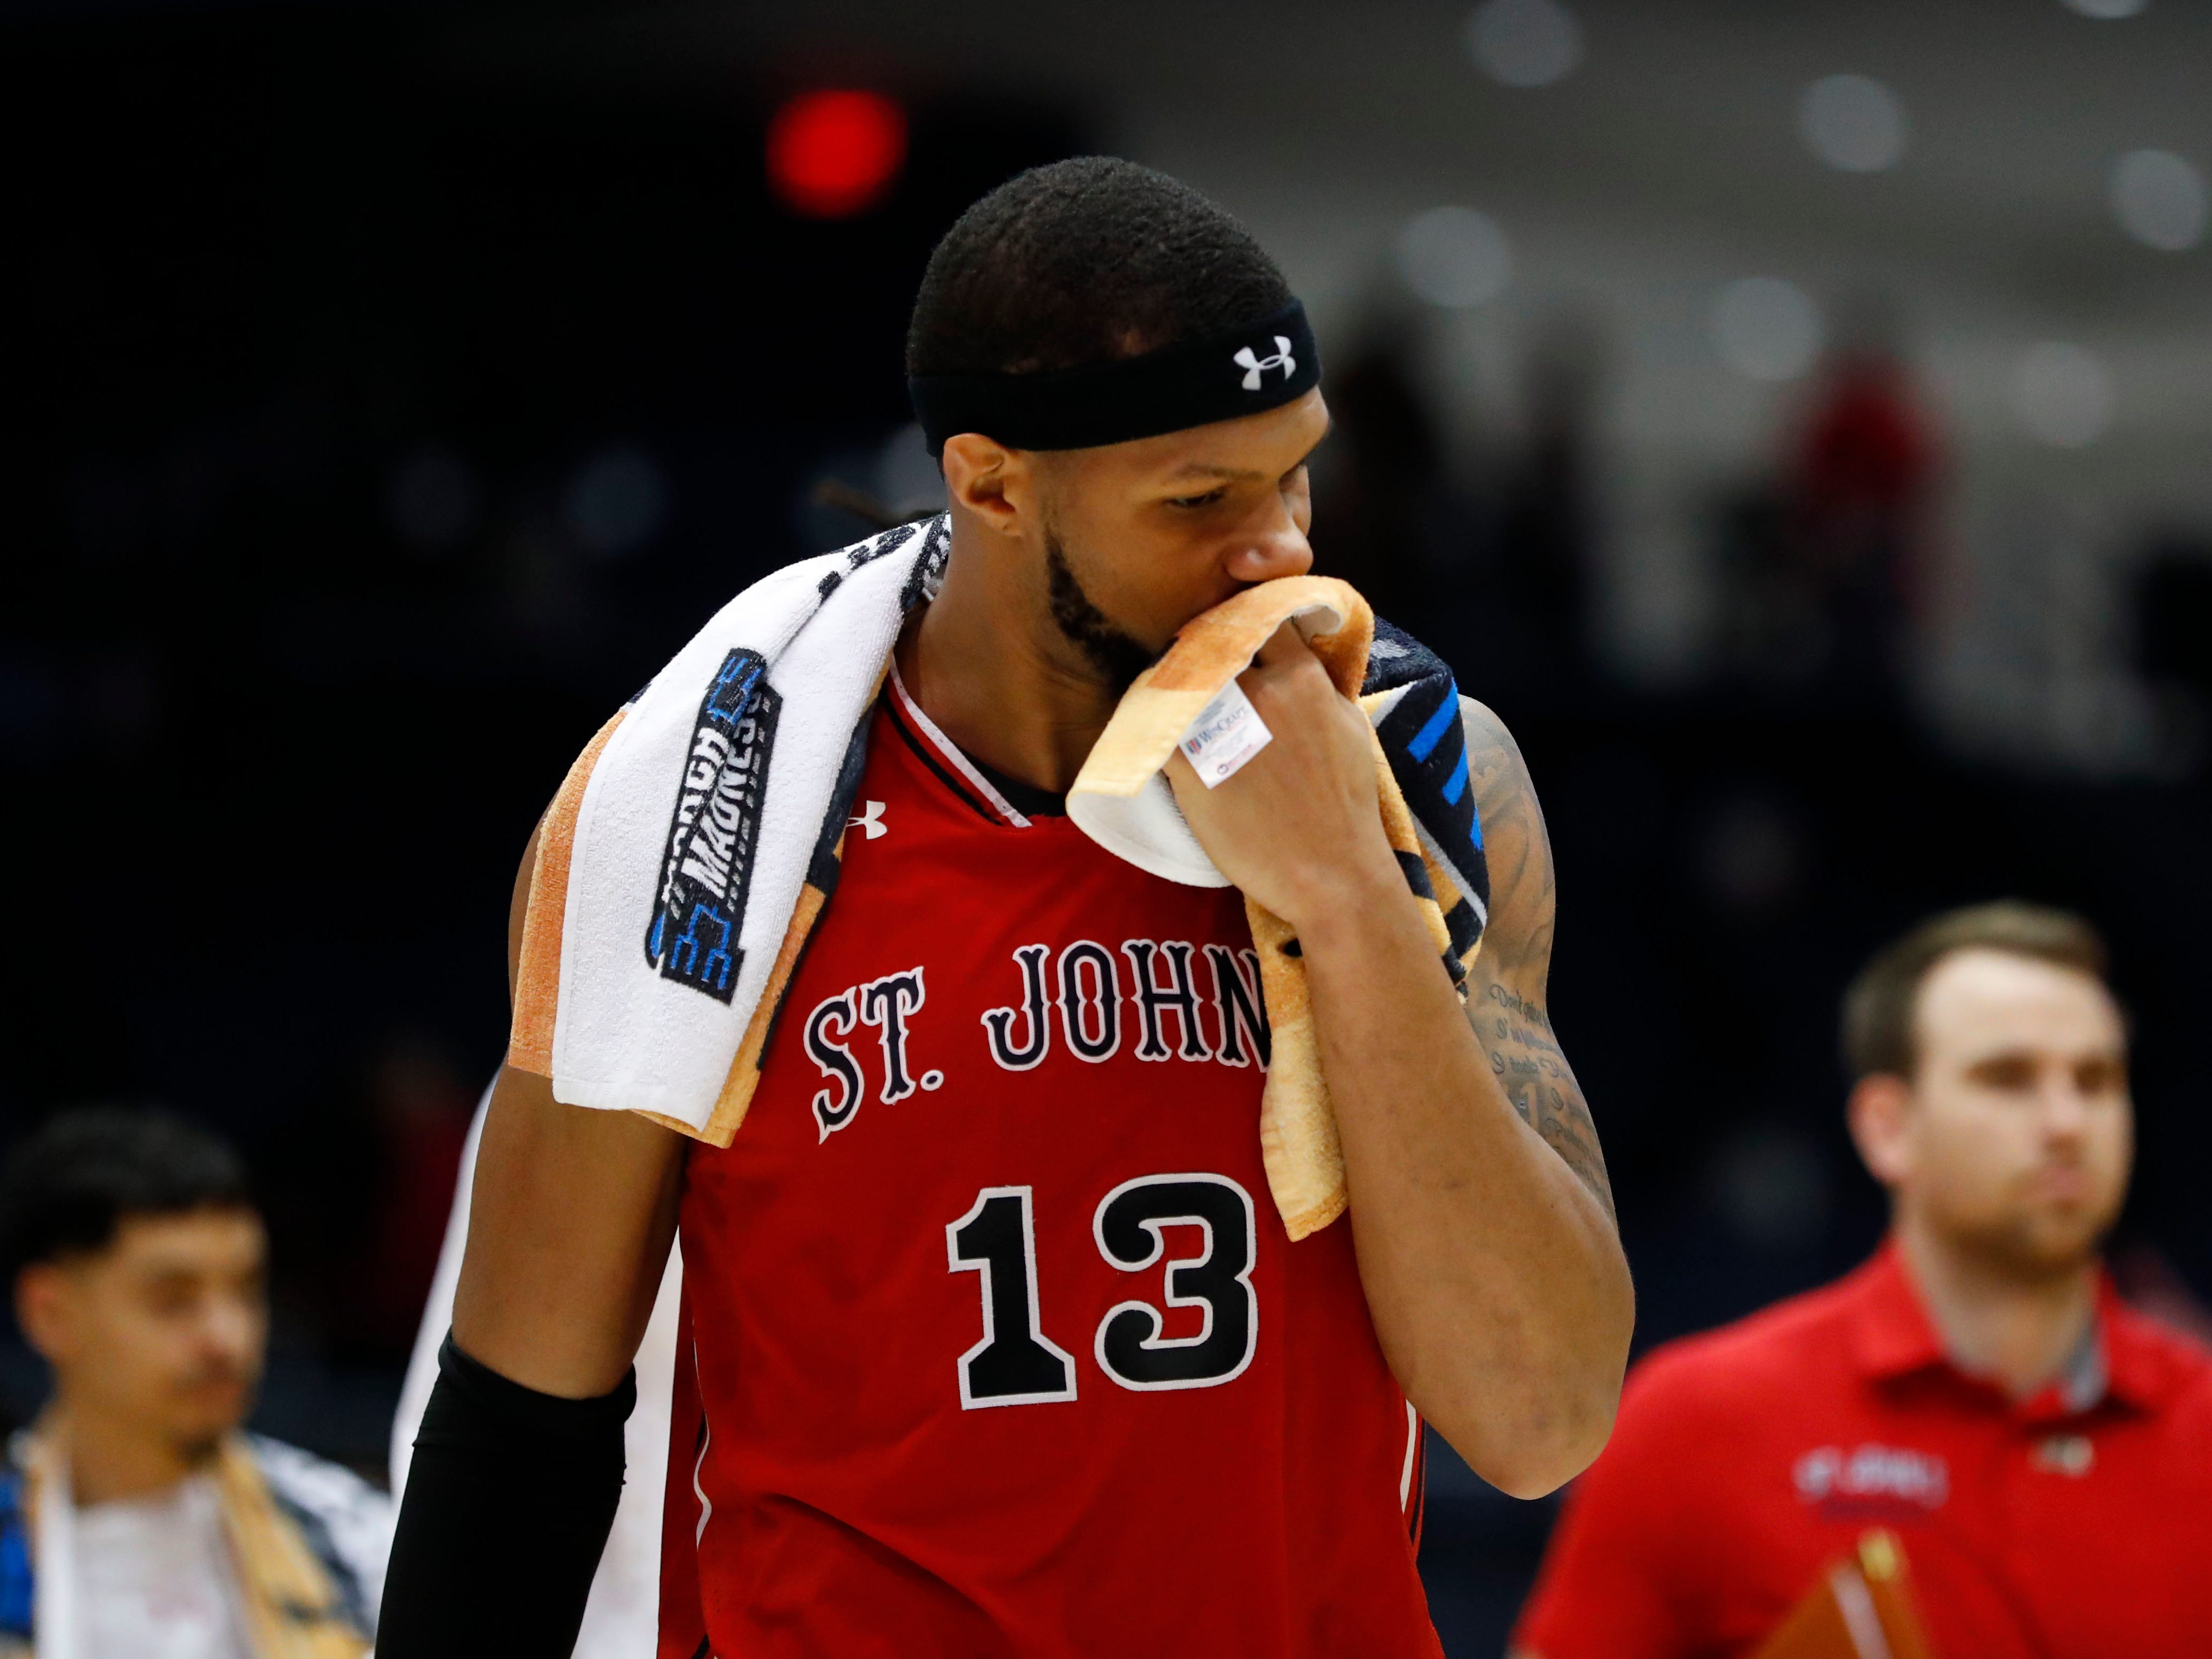 Mar 20, 2019; Dayton, OH, USA; St. John's Red Storm forward Marvin Clark II (13) walks off the court after being defeated by Arizona State Sun Devils in the First Four of the 2019 NCAA Tournament at Dayton Arena. Mandatory Credit: Rick Osentoski-USA TODAY Sports